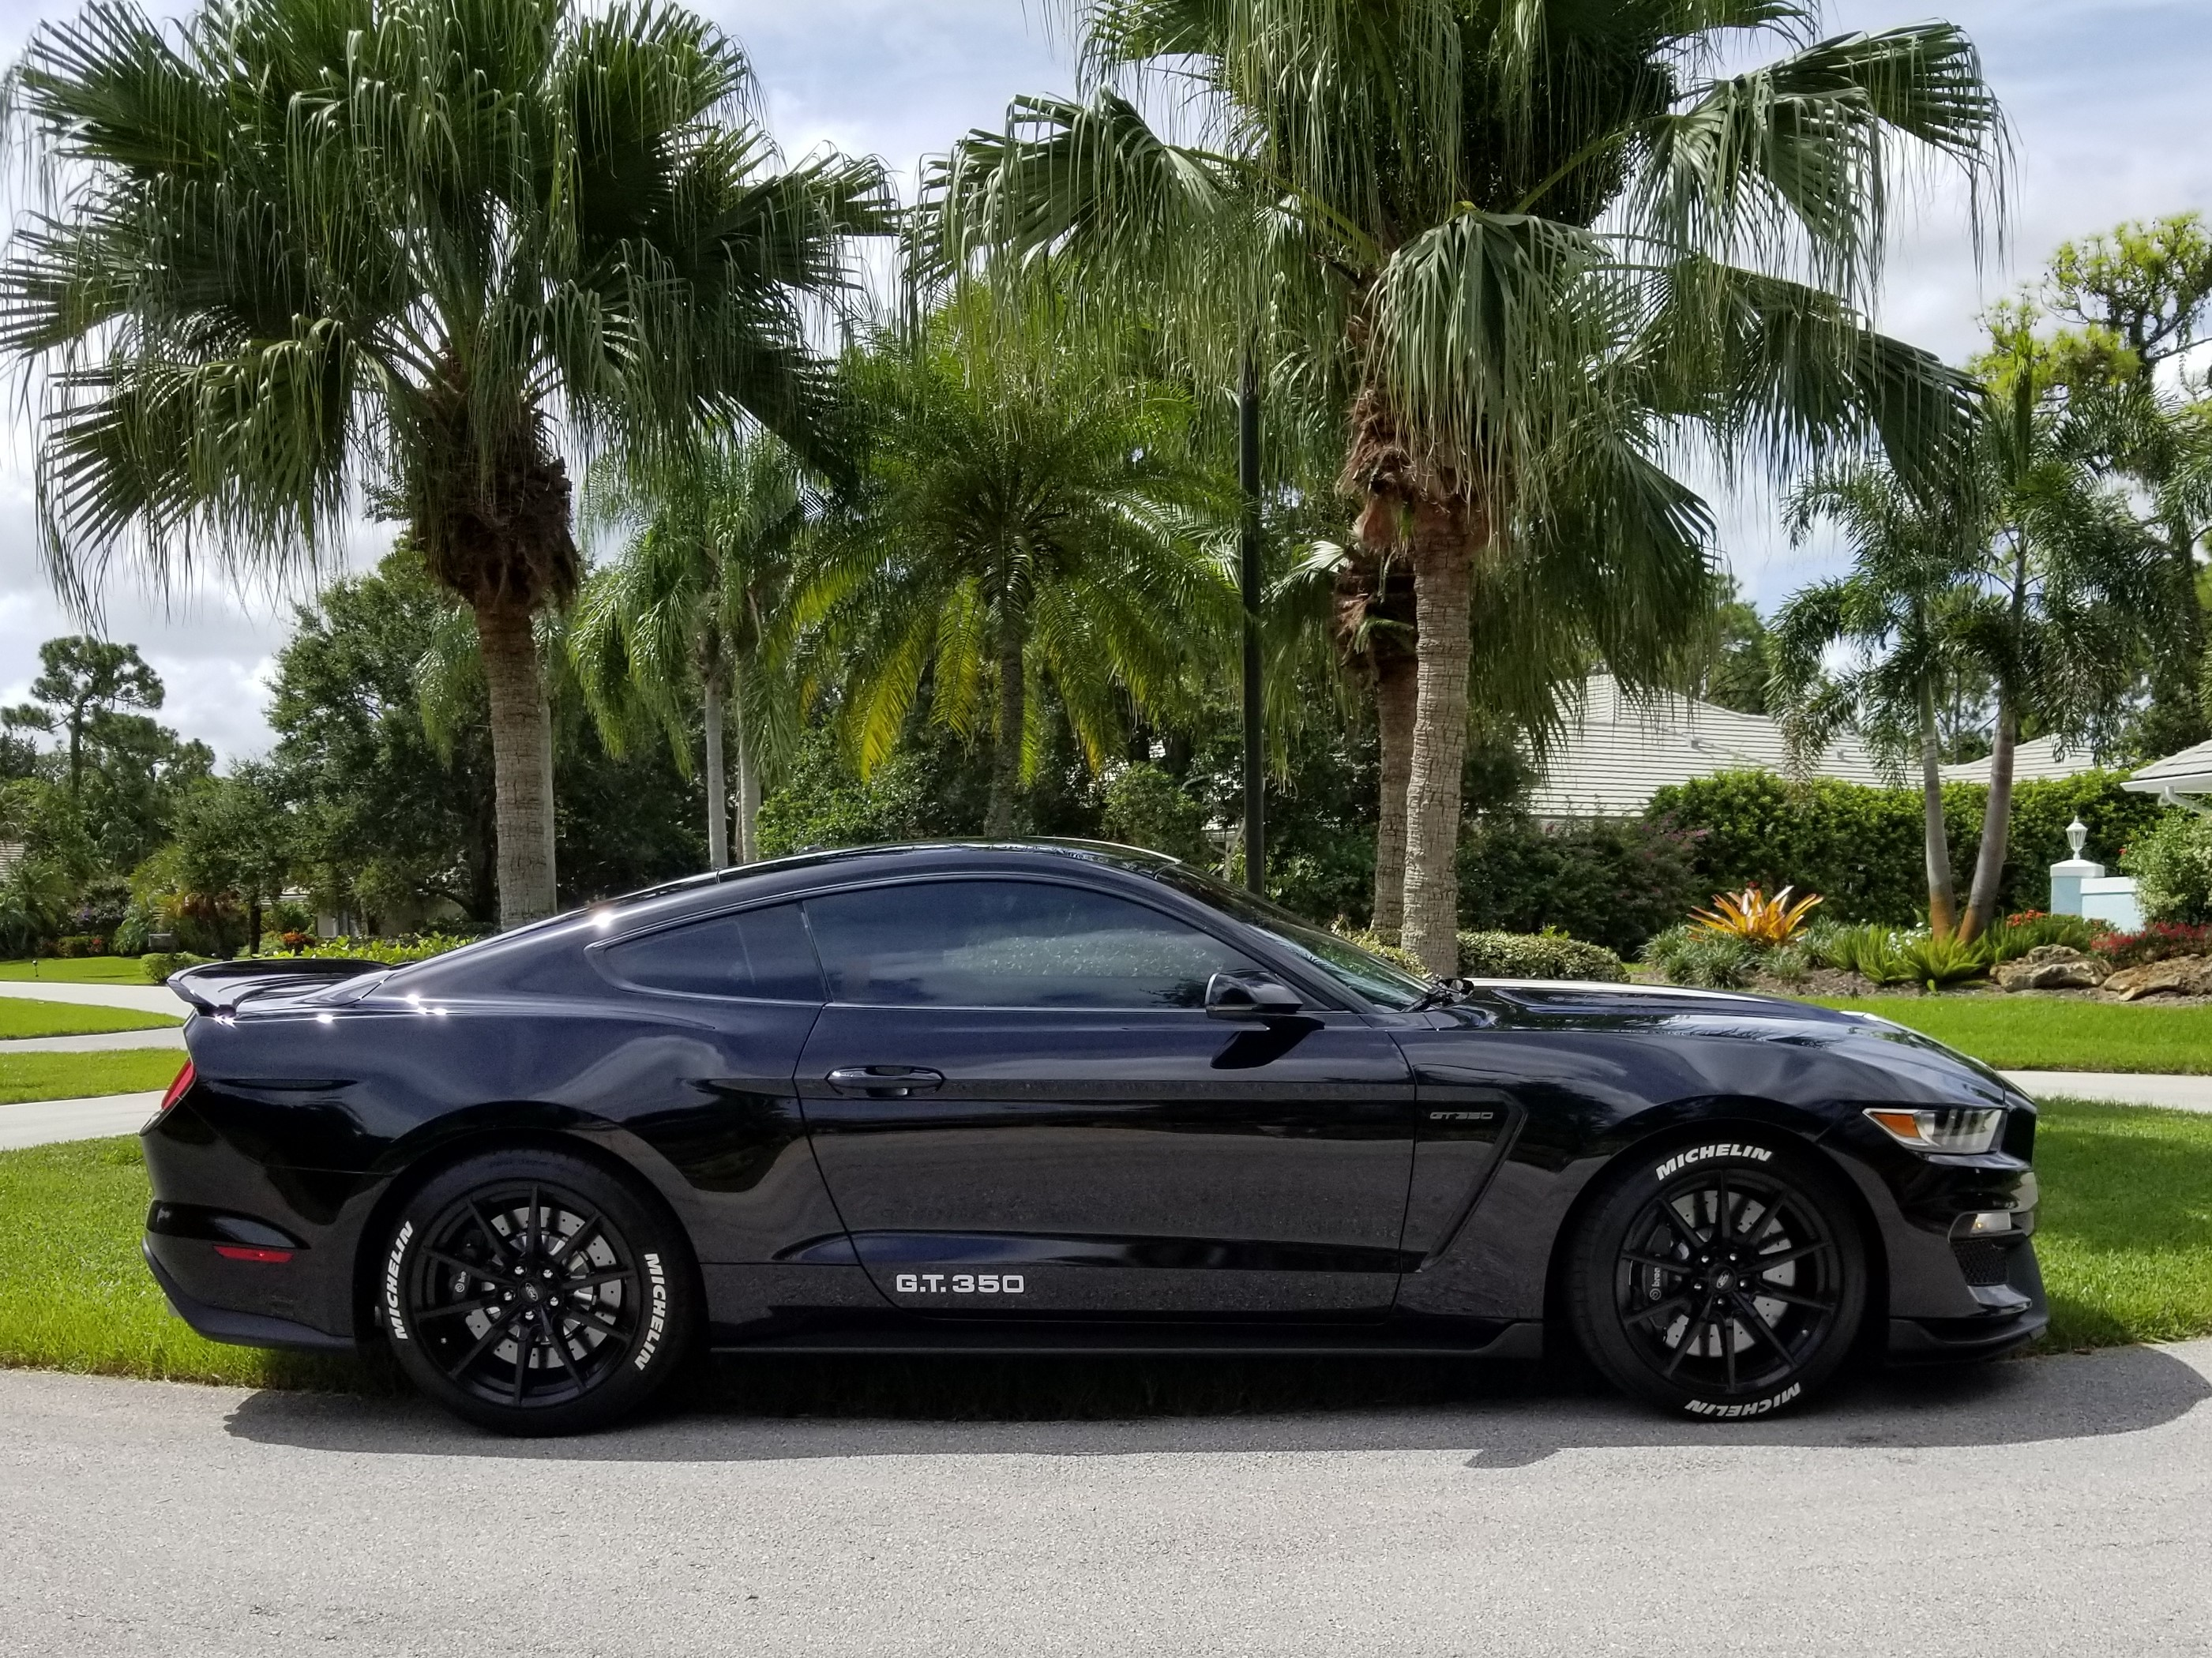 2017 Mustang Gt350 Black >> Shelby GT350 Shadow Black Photos - Page 2